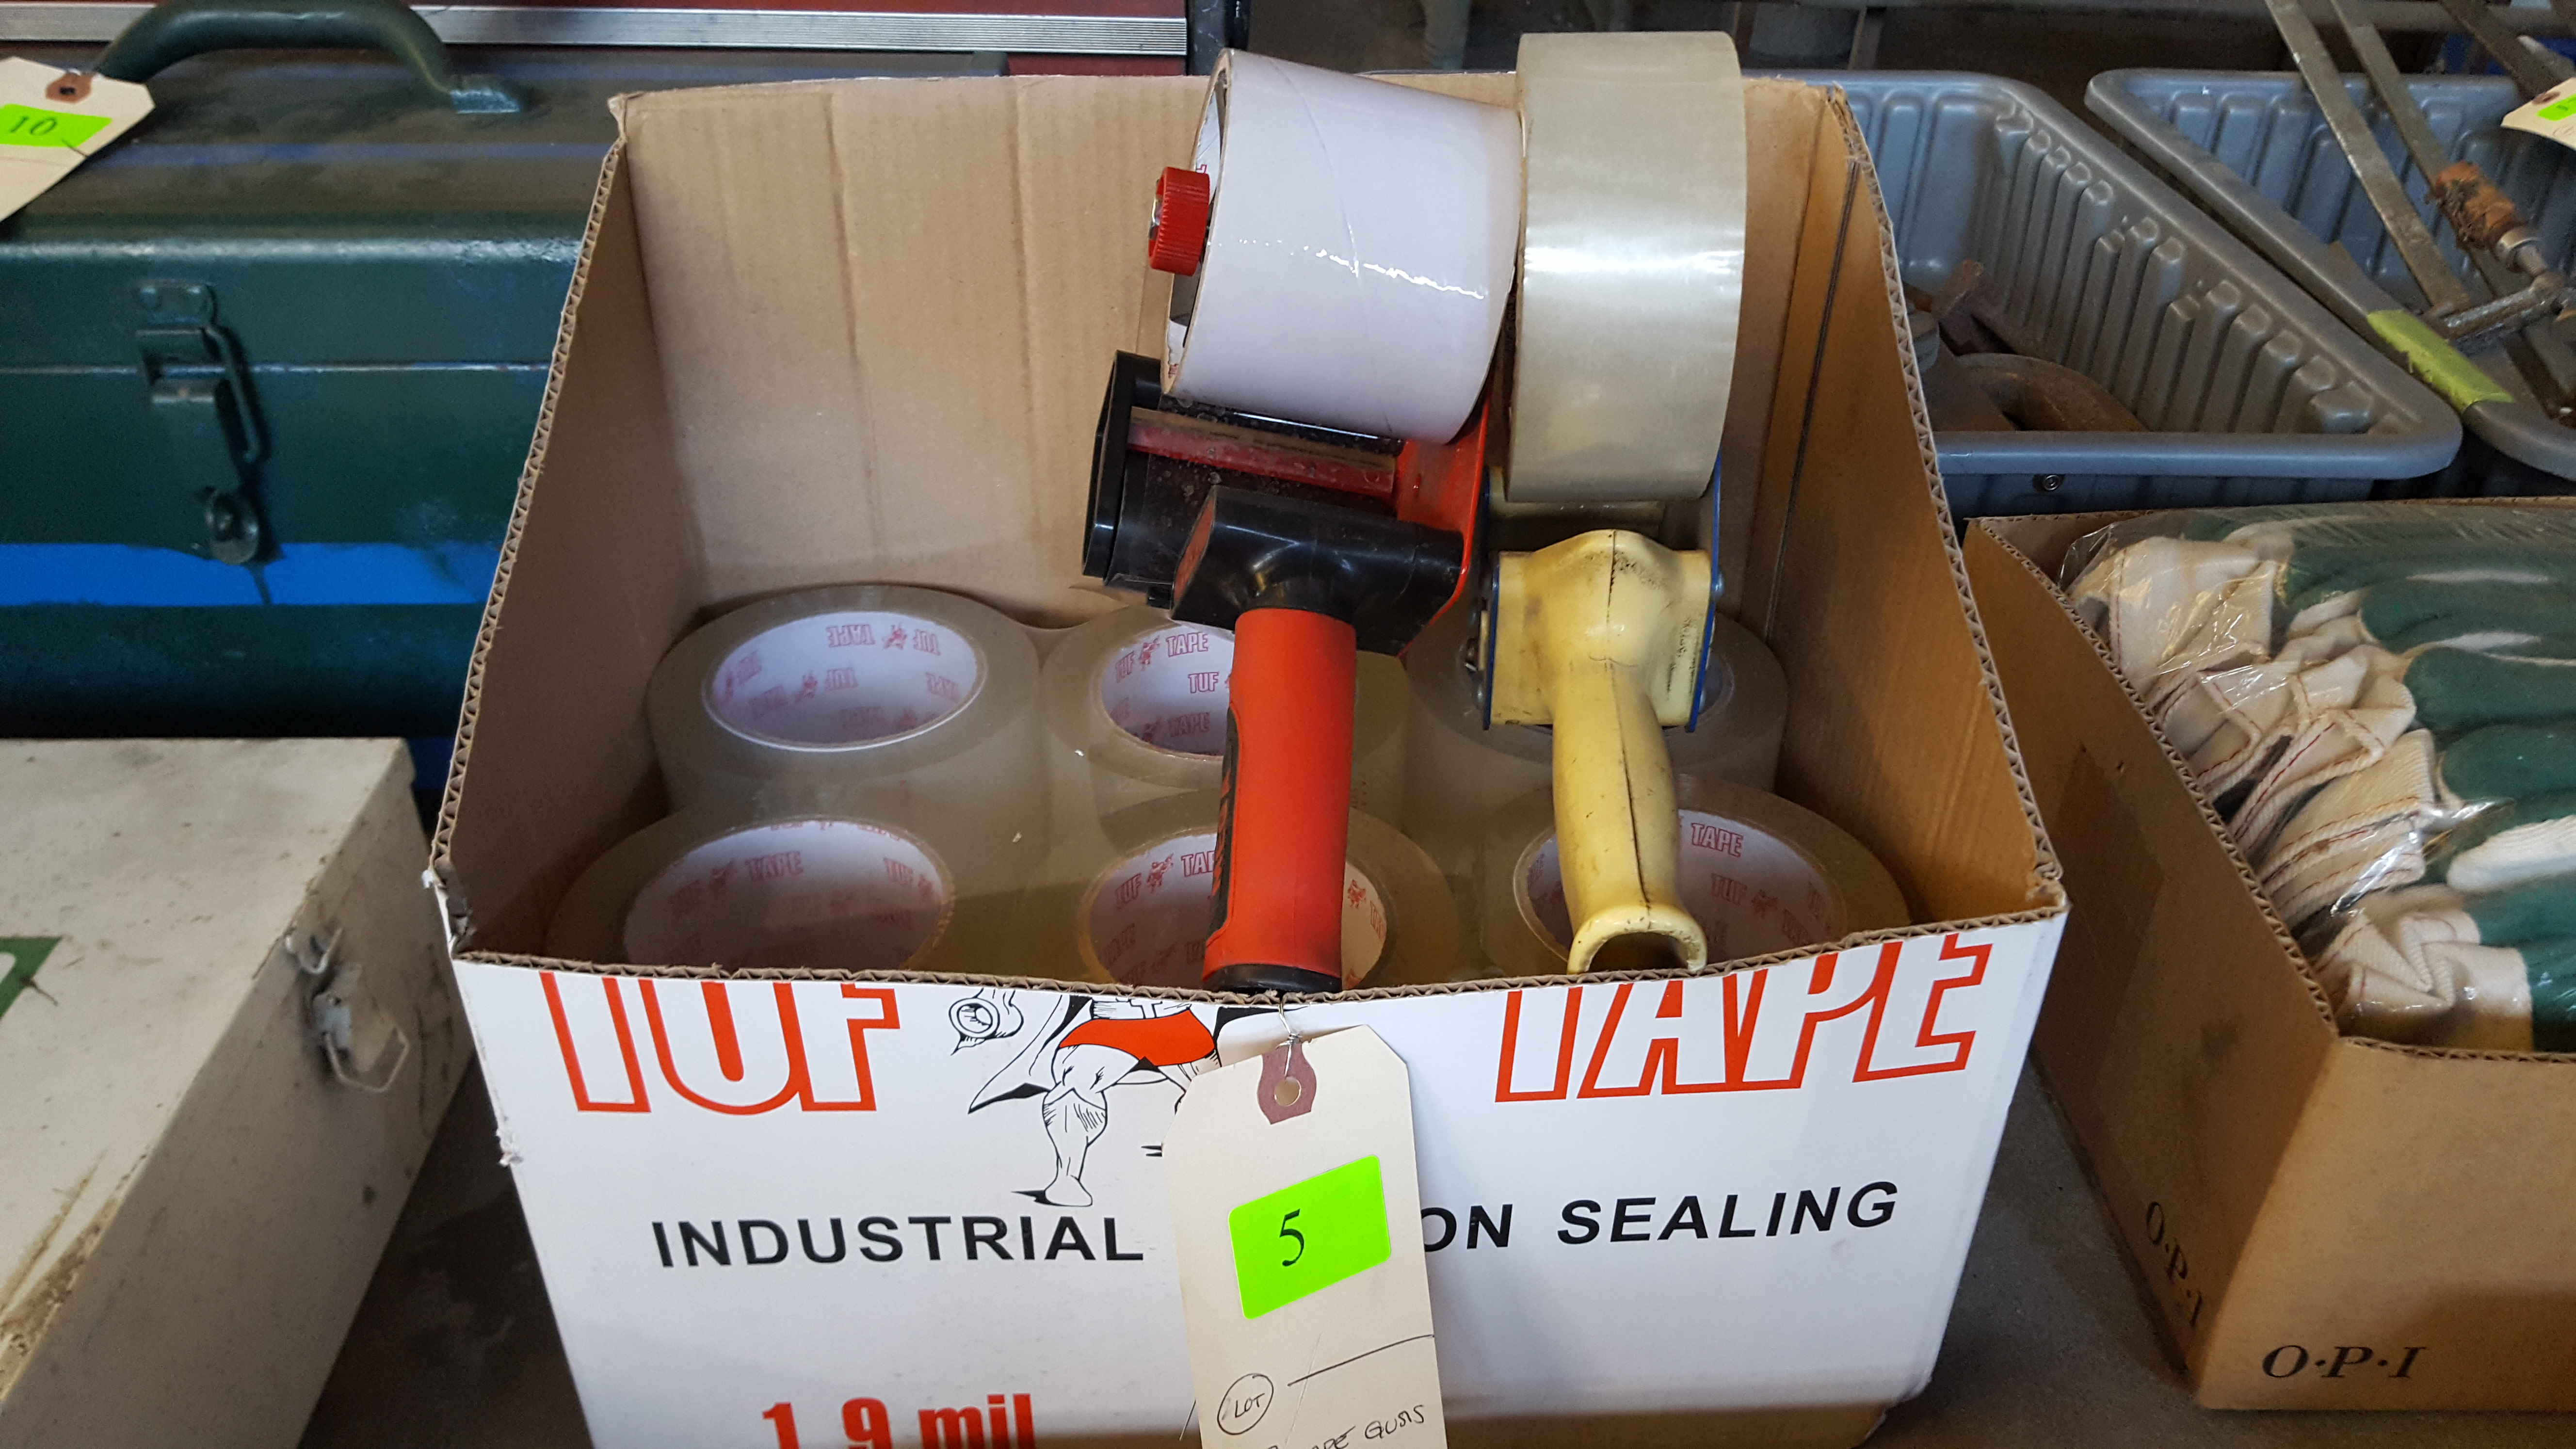 Lot 5 - 3 TAPE GUNS AND TAPE